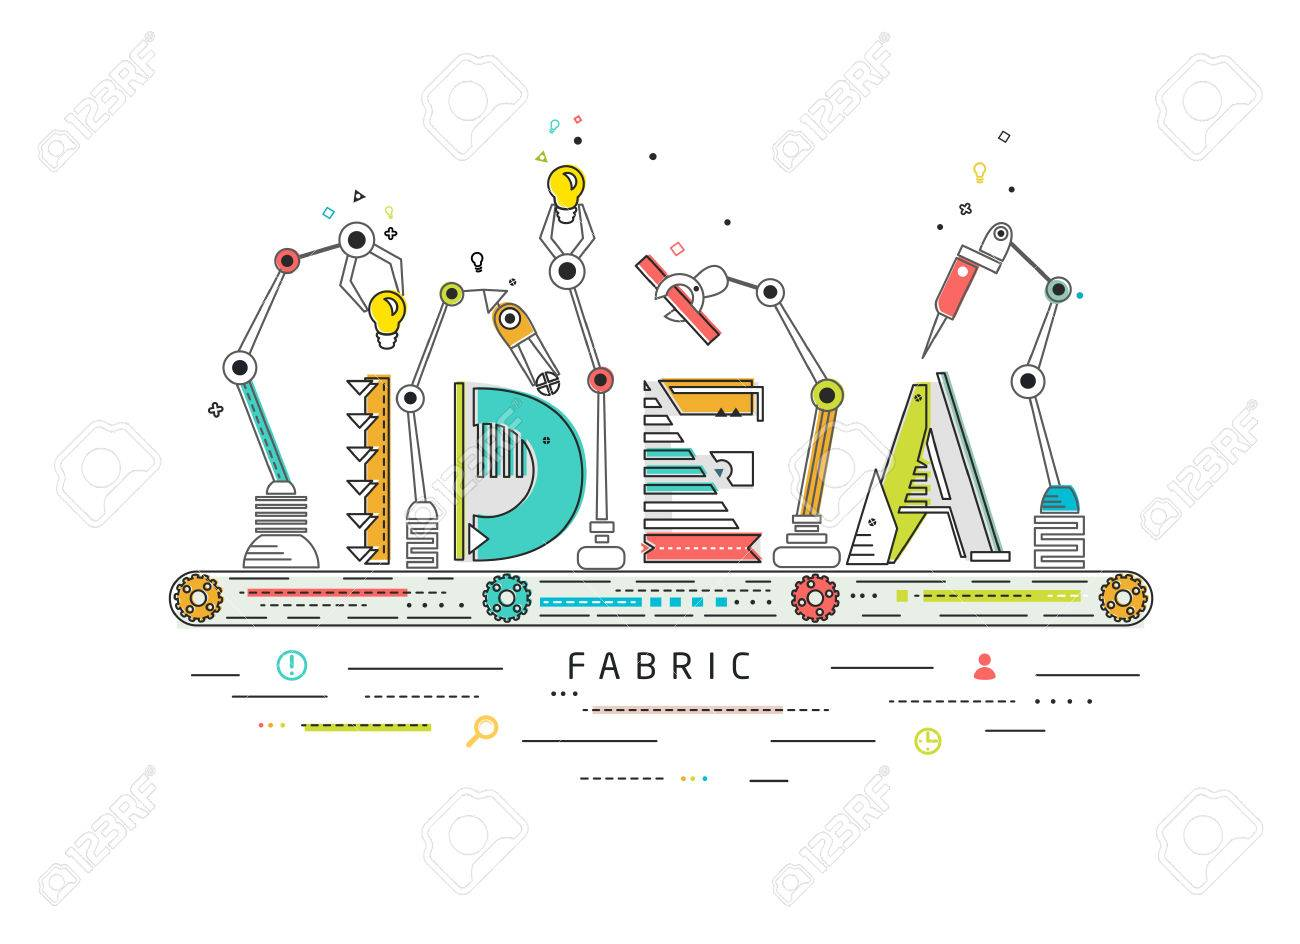 Concept of creating and building idea / Robotic production line / manufacturing and machine / typography - 55087101